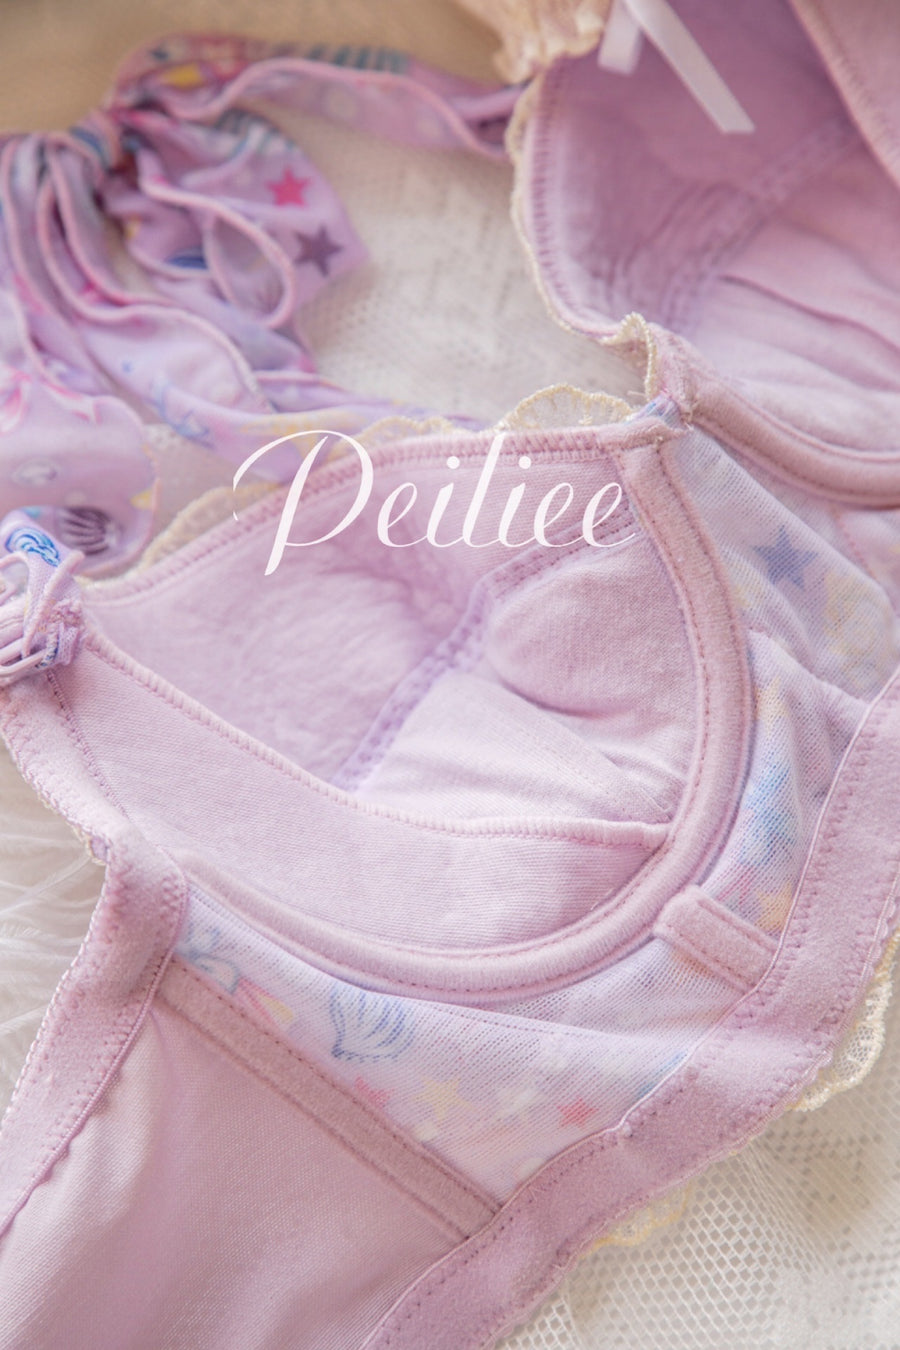 [Product Photo] Mermaid Story Soft Bra set - Peiliee Shop